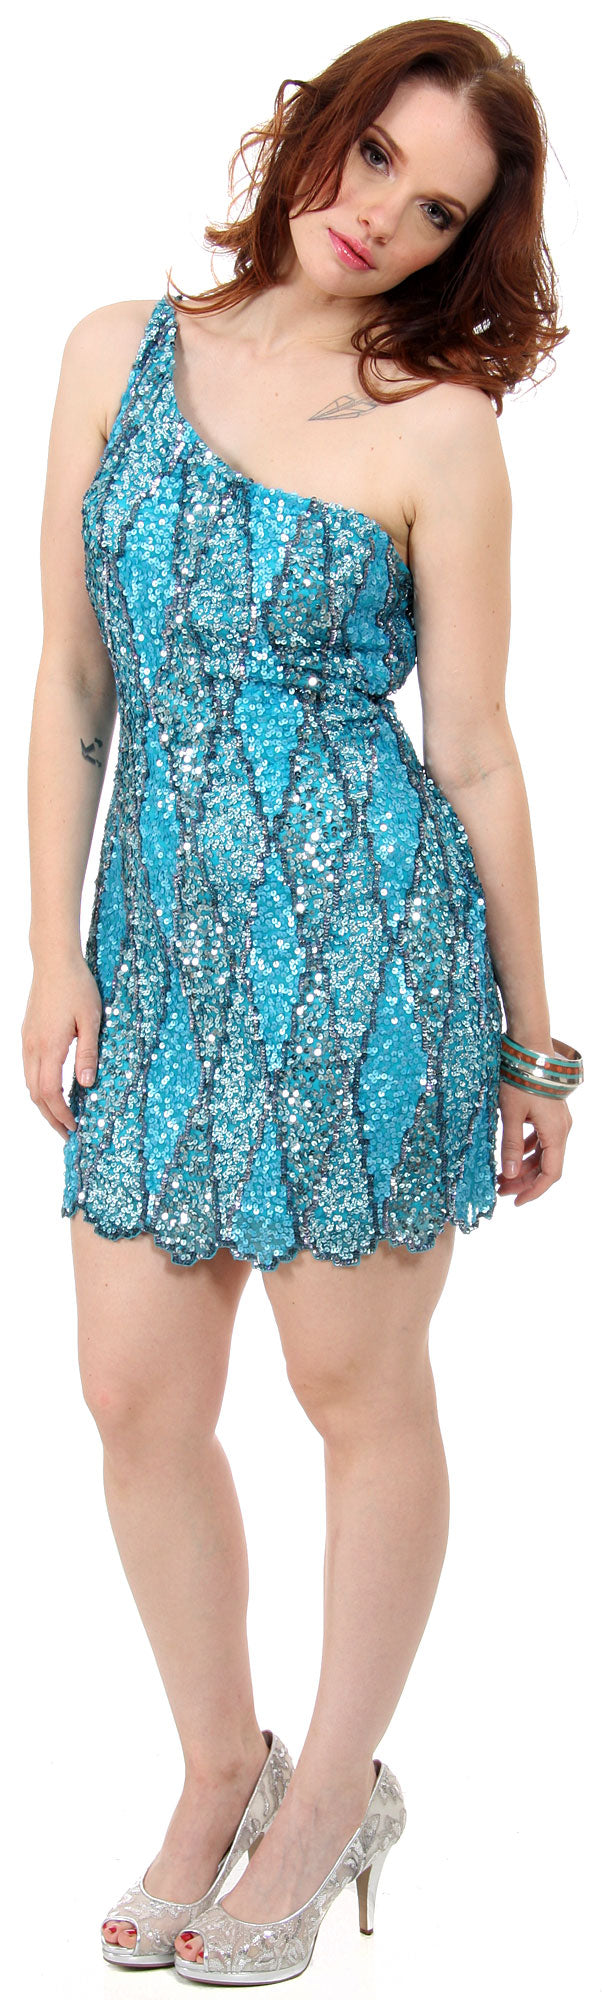 Image of One Shoulder Two Tone Dress With Asymetical Hemline in Turquoise